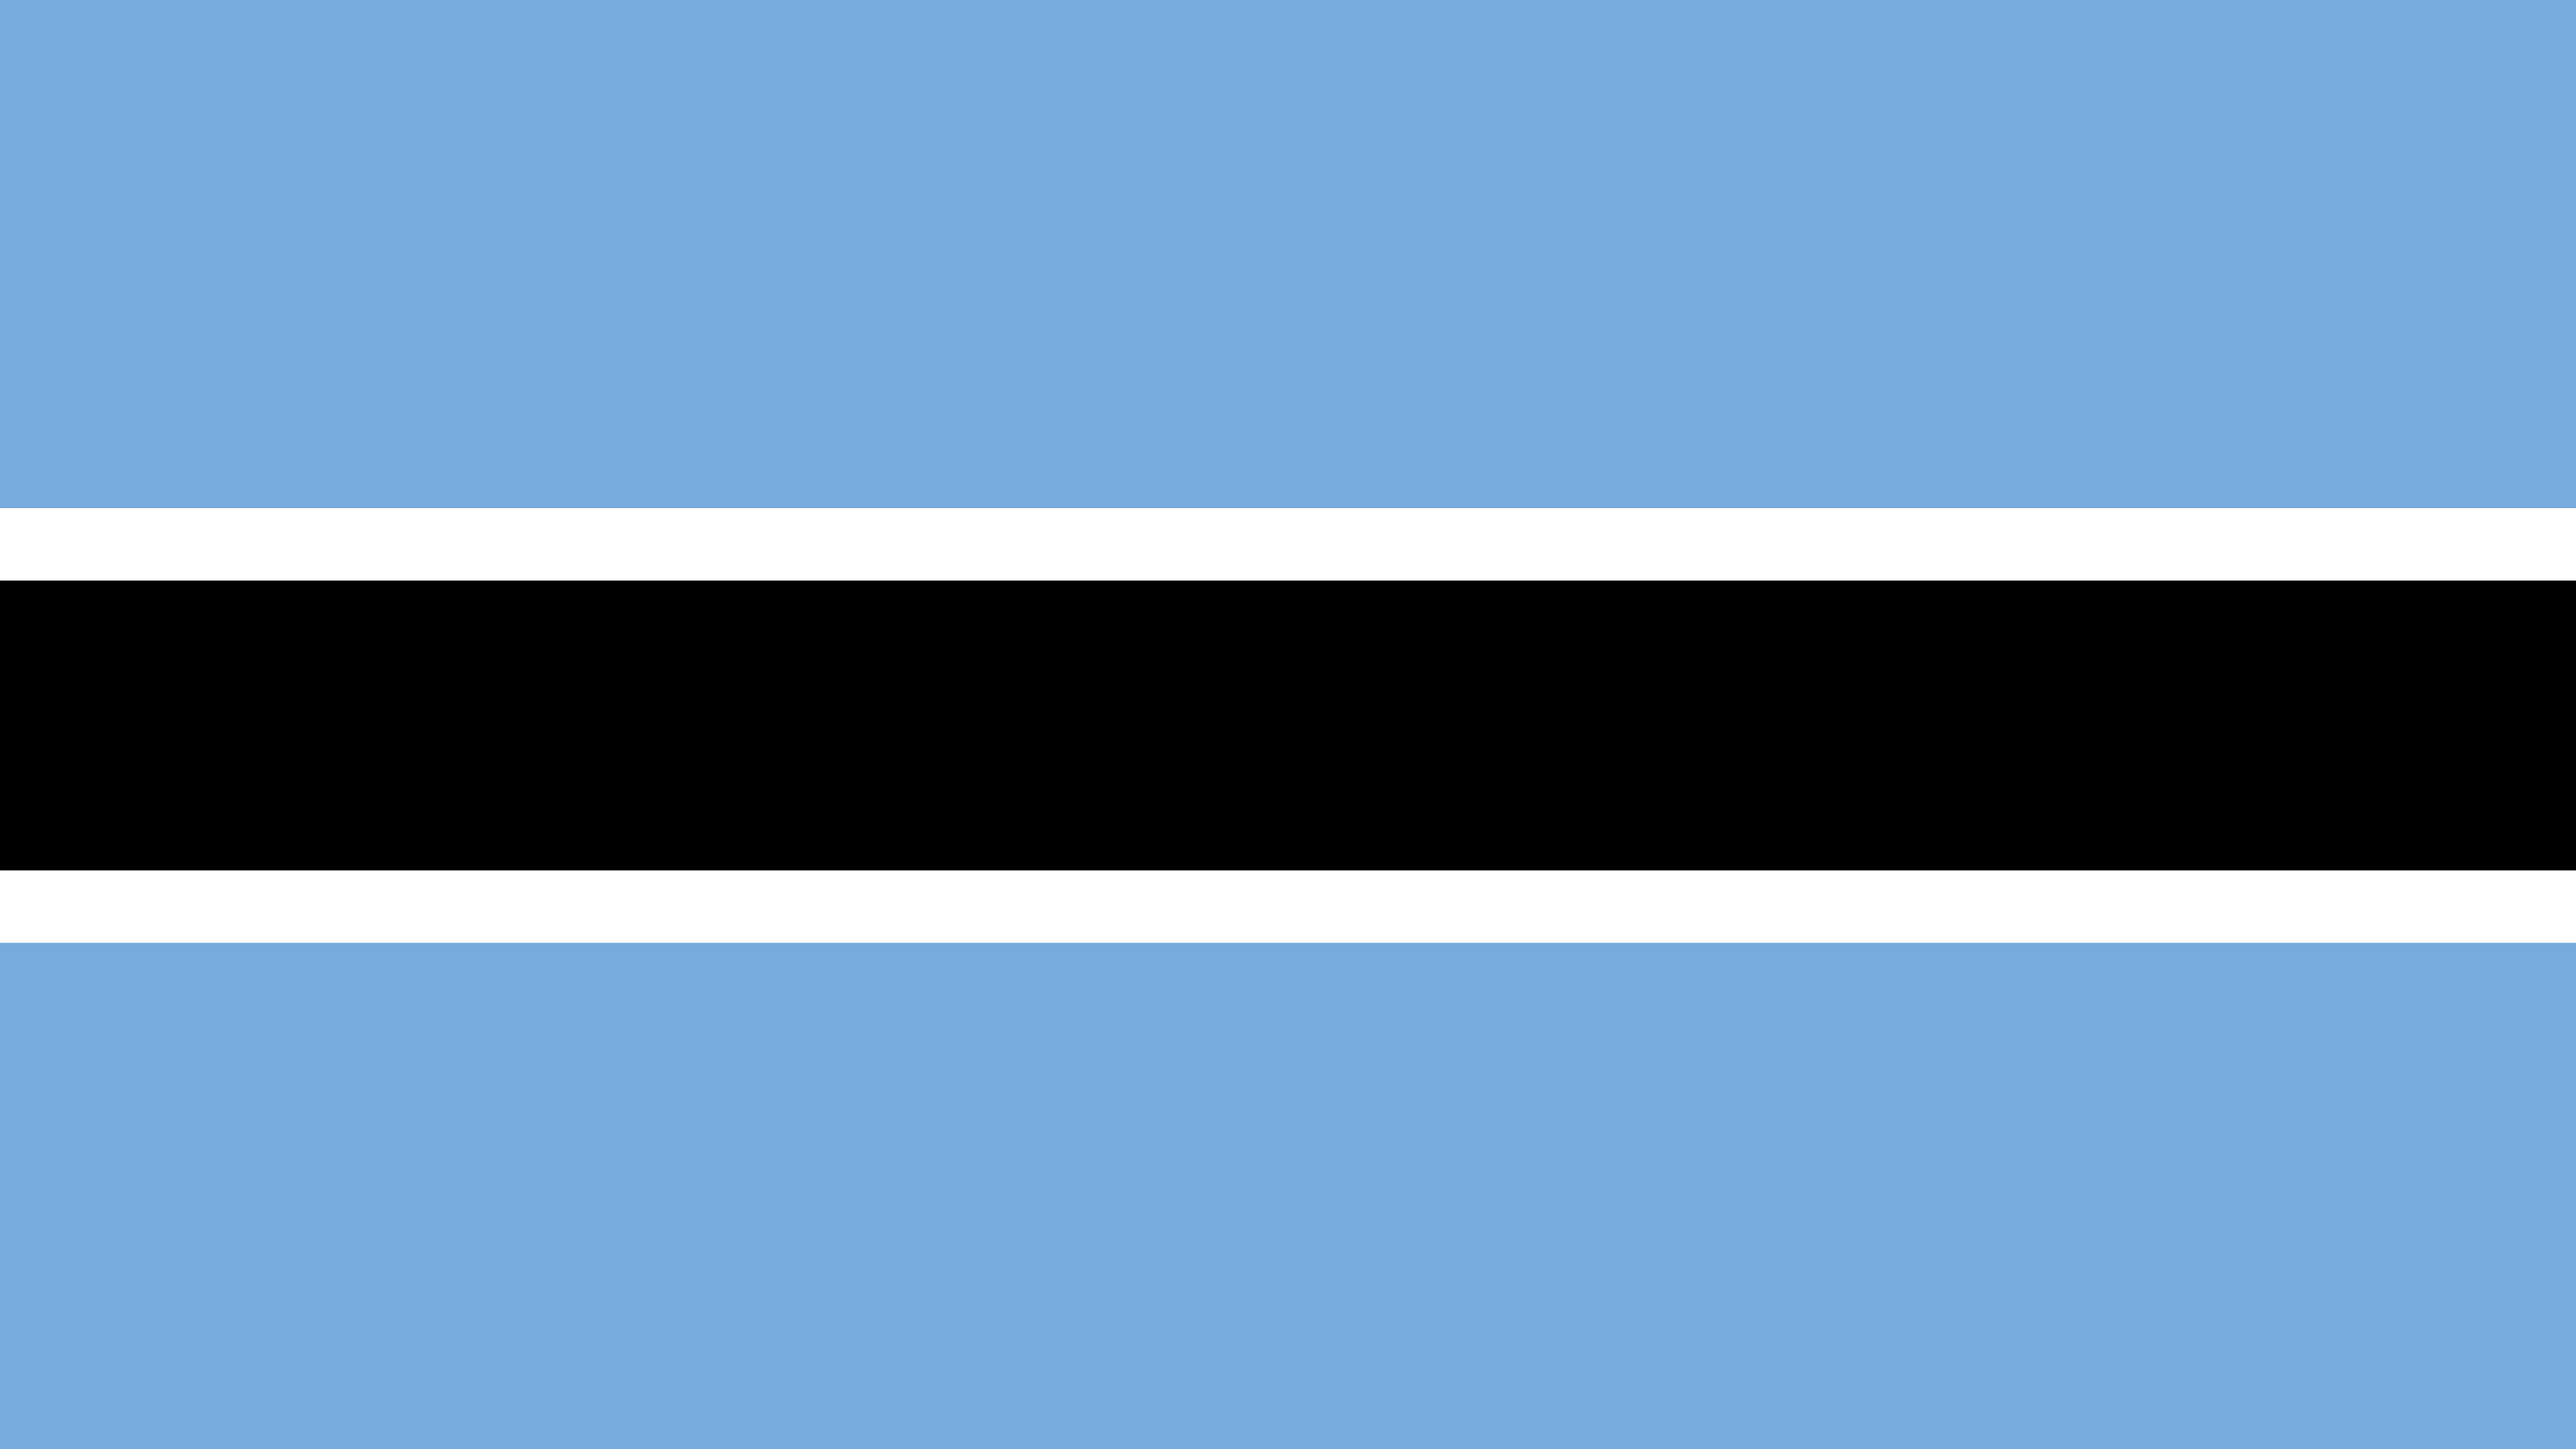 botswana flag uhd 4k wallpaper